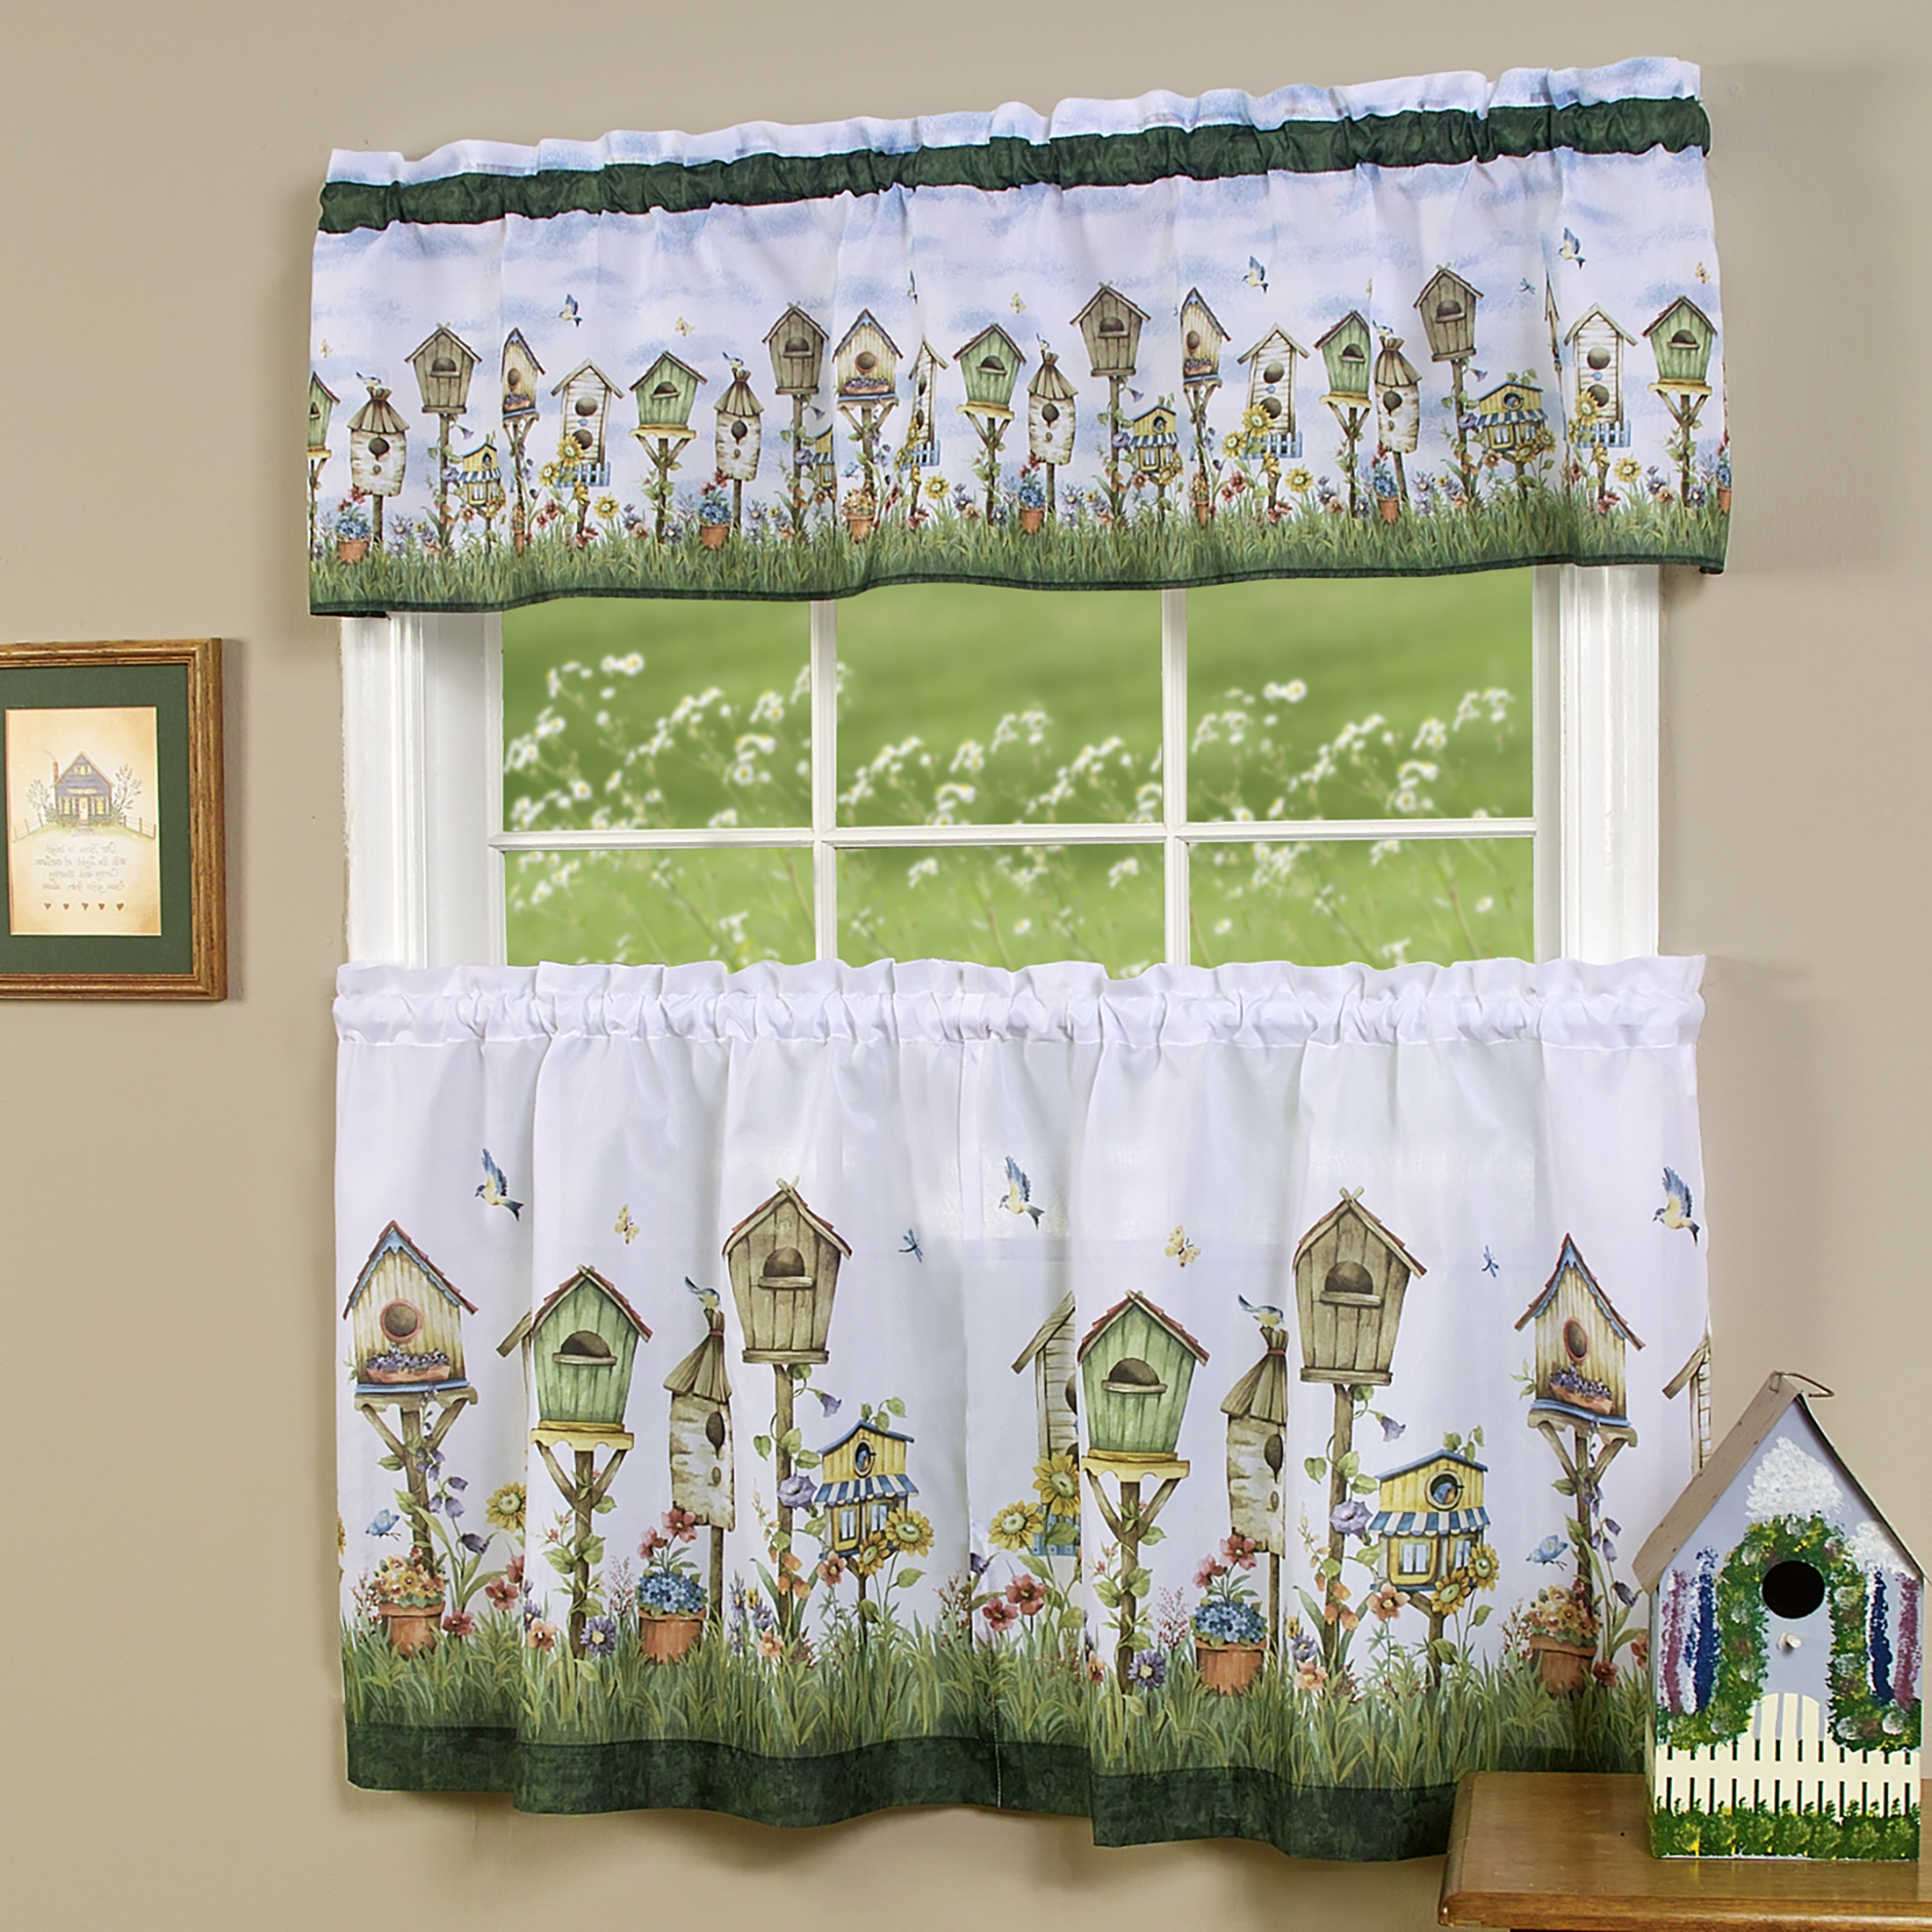 Kitchen Window Tier Sets Pertaining To Popular Details About 3pc Floral Window Kitchen Curtain Set Love Birds Birdhouse Tier Panel & Valance (View 10 of 20)